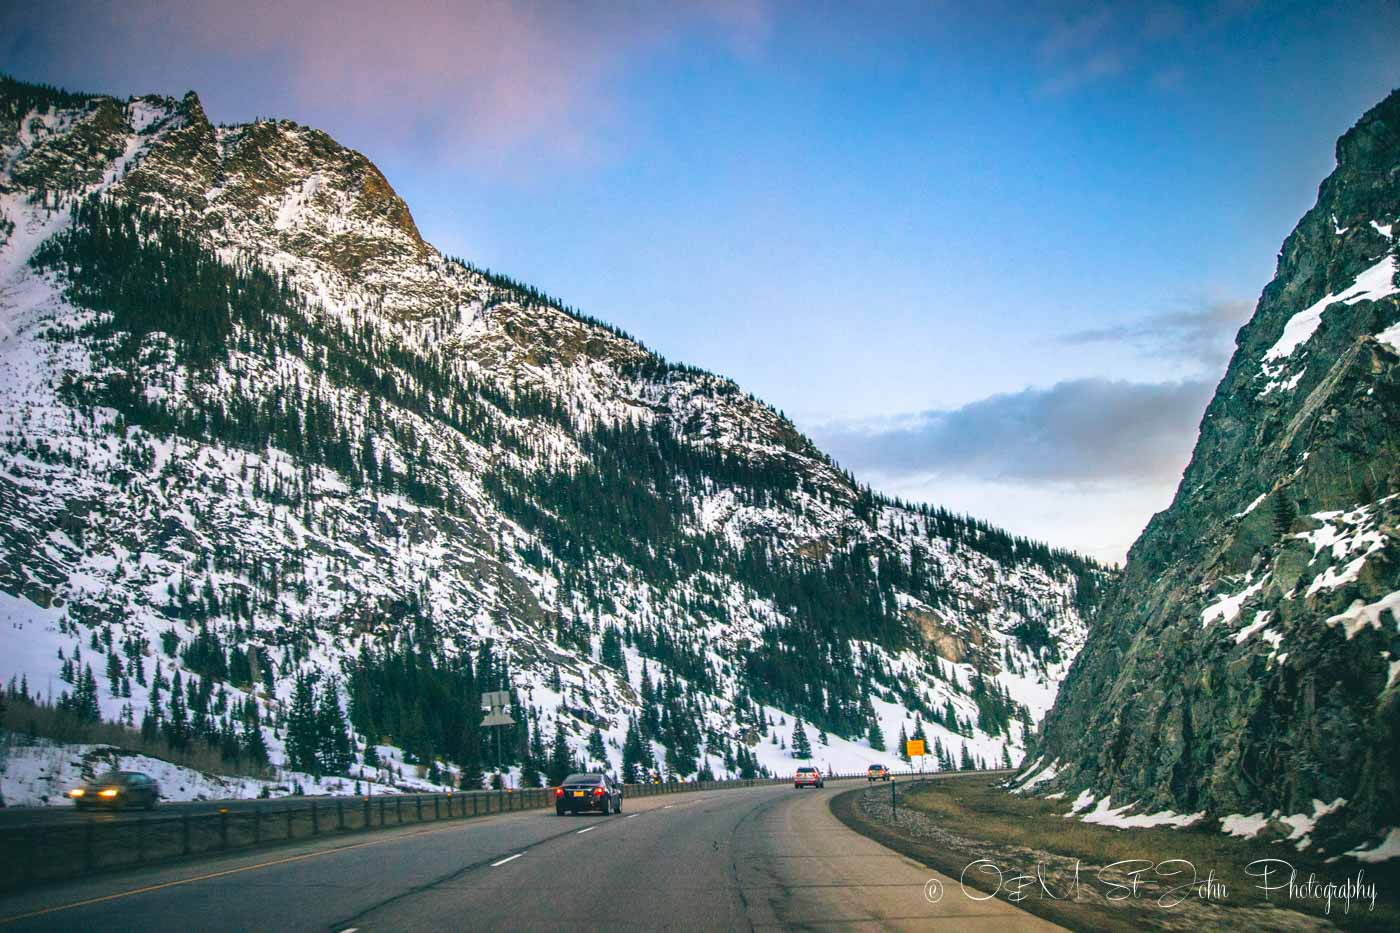 Colorado road trip: Scenic Drive from Denver to Glenwood Springs along I-70. Colorado. USA